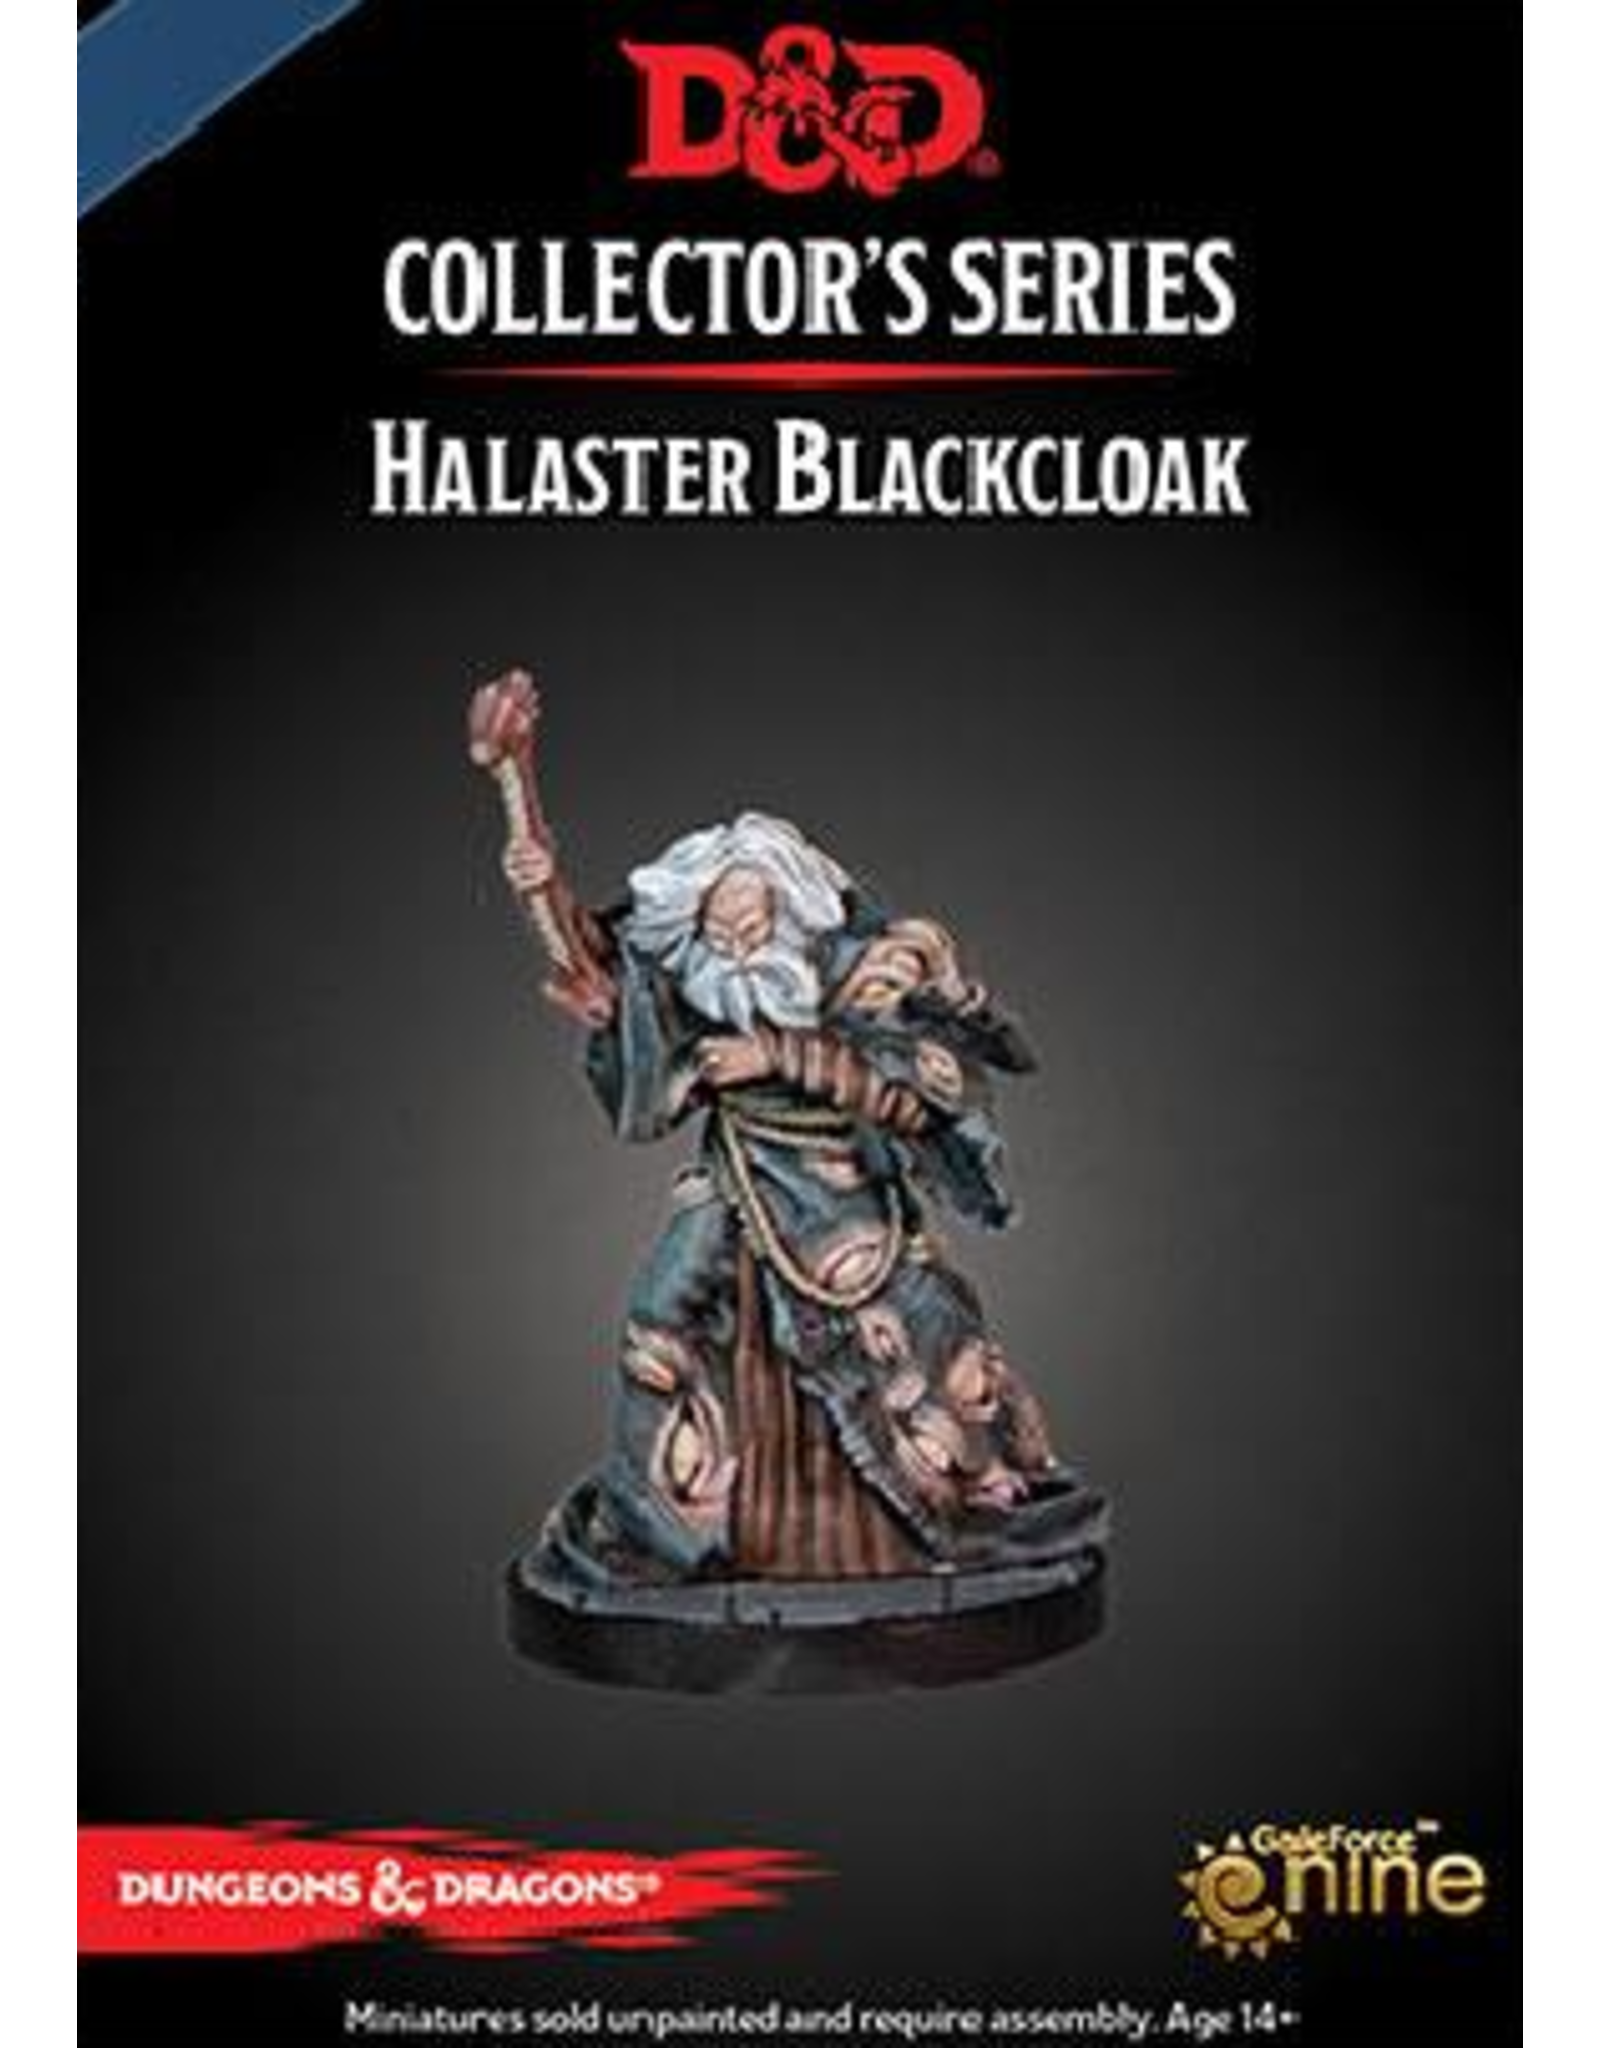 GaleForce9 GF9: D&D Collector's Series: Halaster Blackcloak